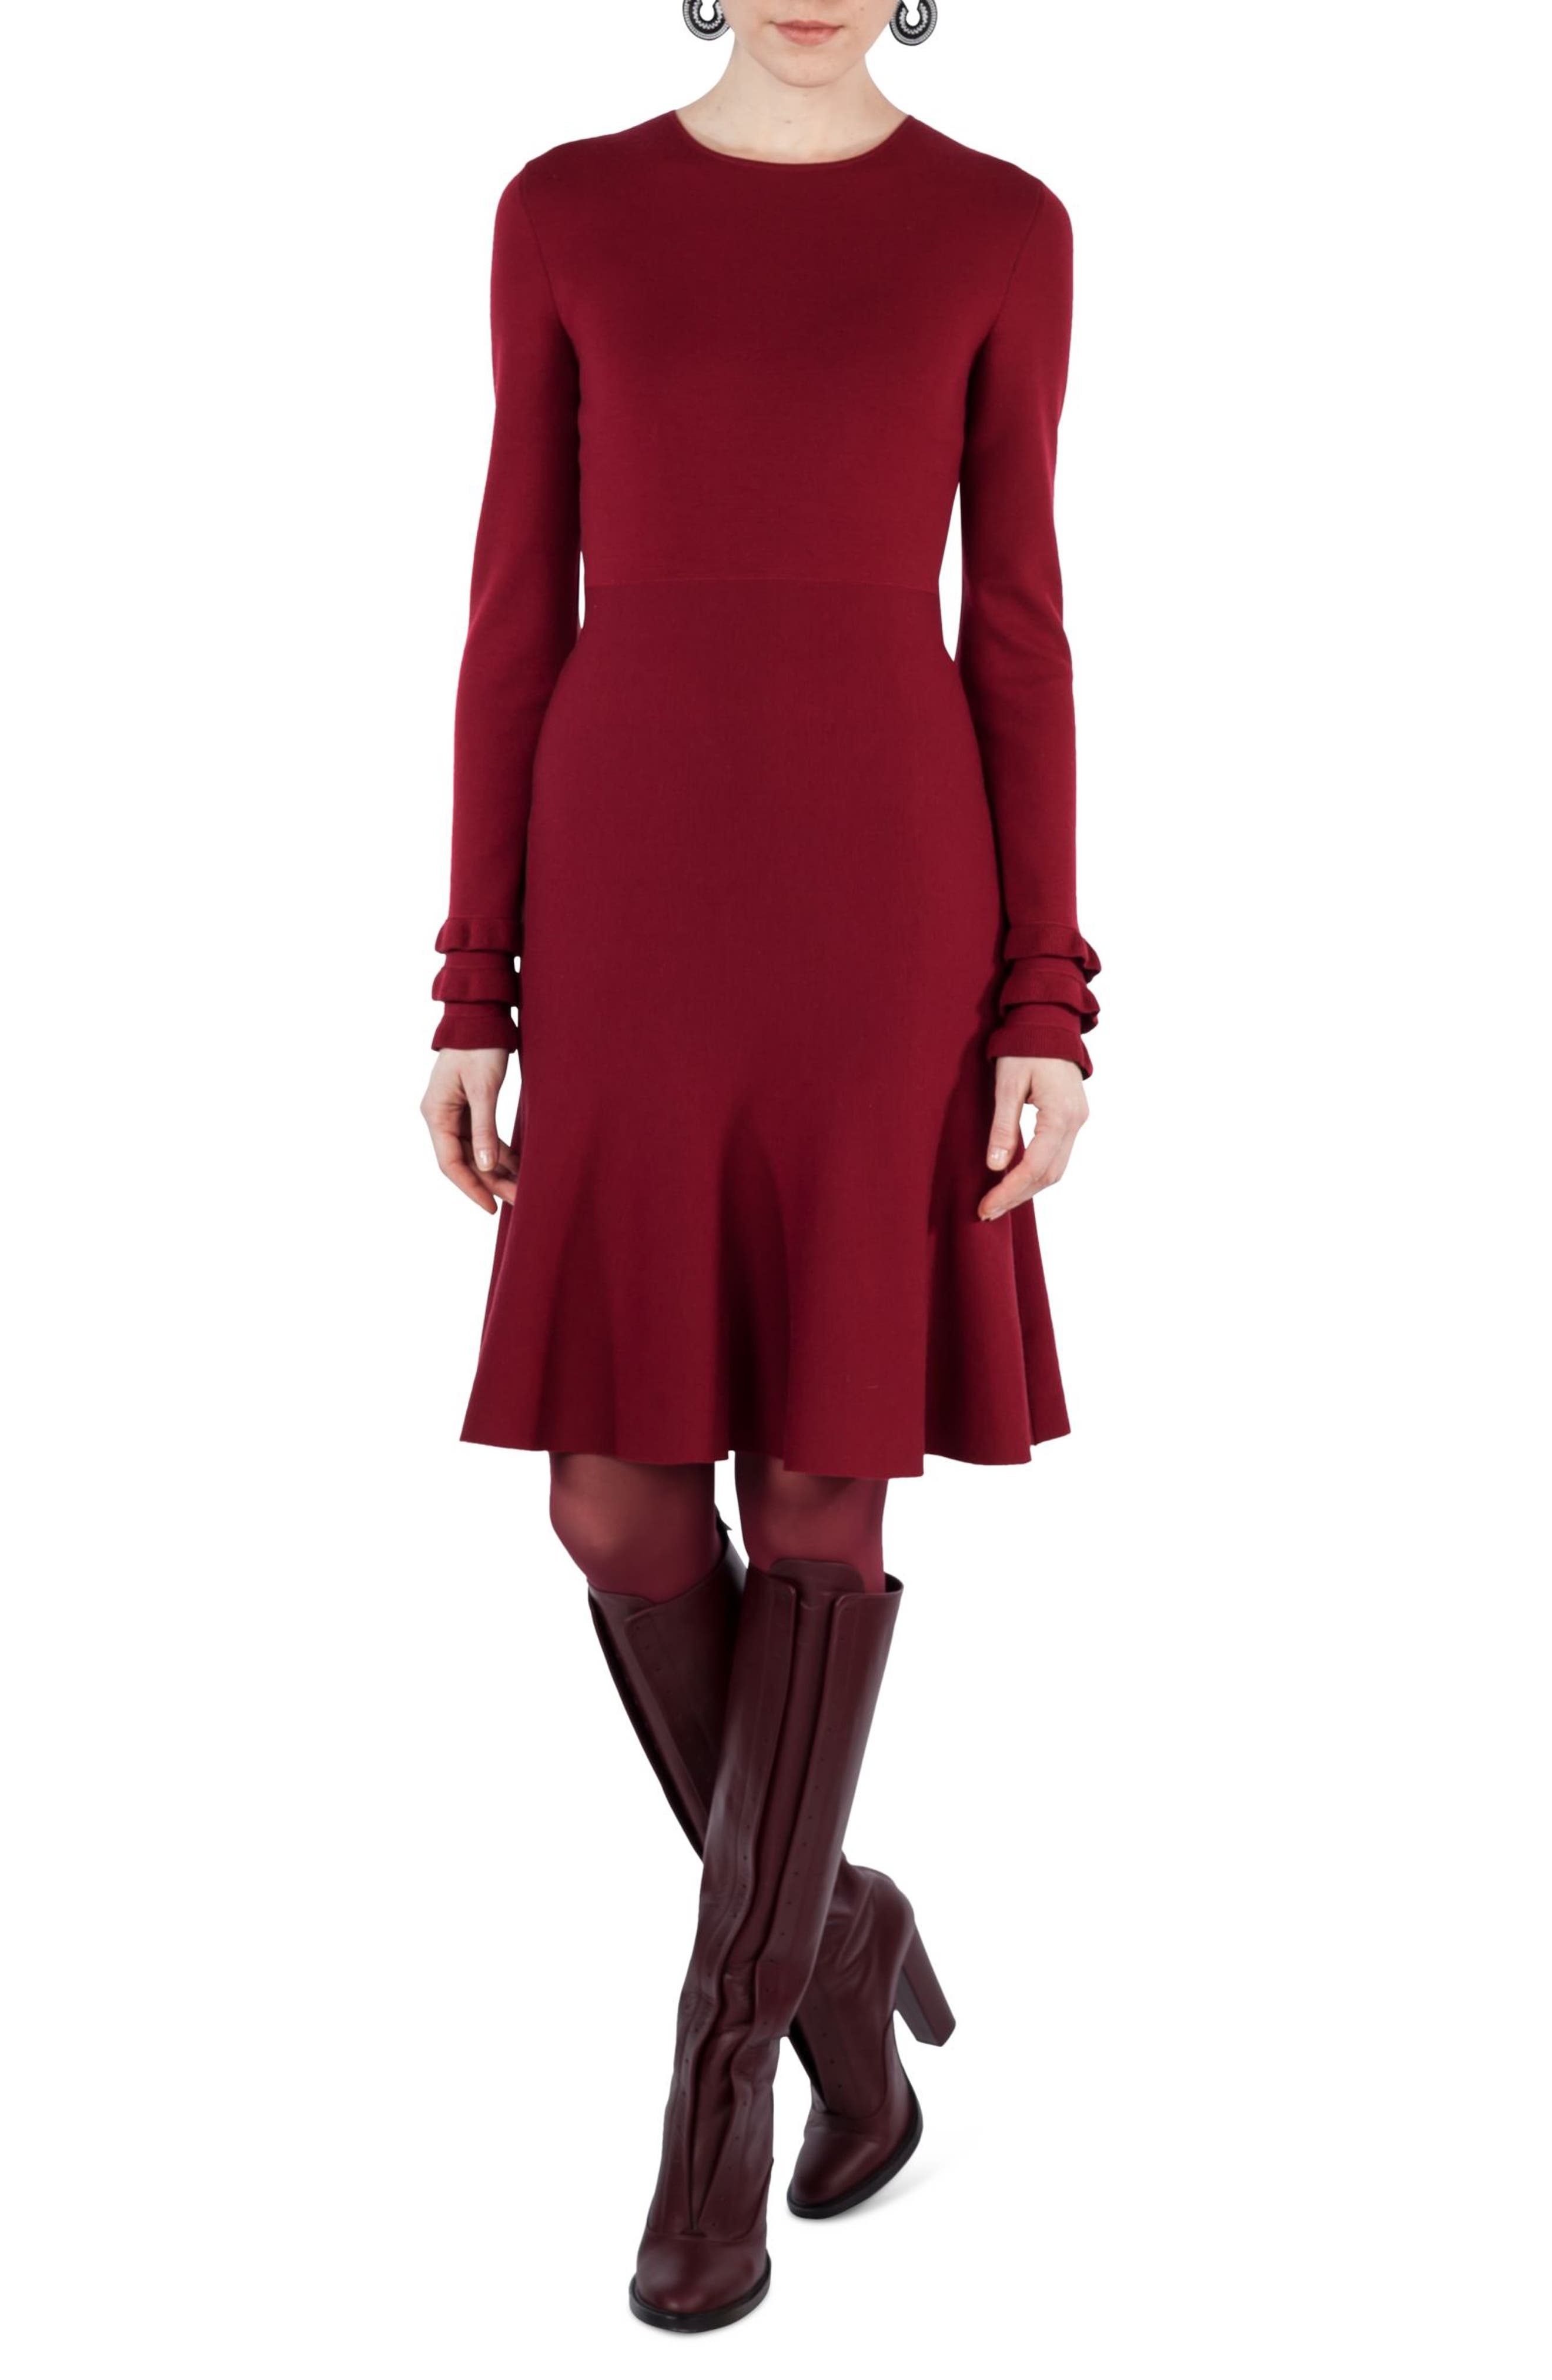 Knit Stretch Wool Dress,                             Main thumbnail 1, color,                             930